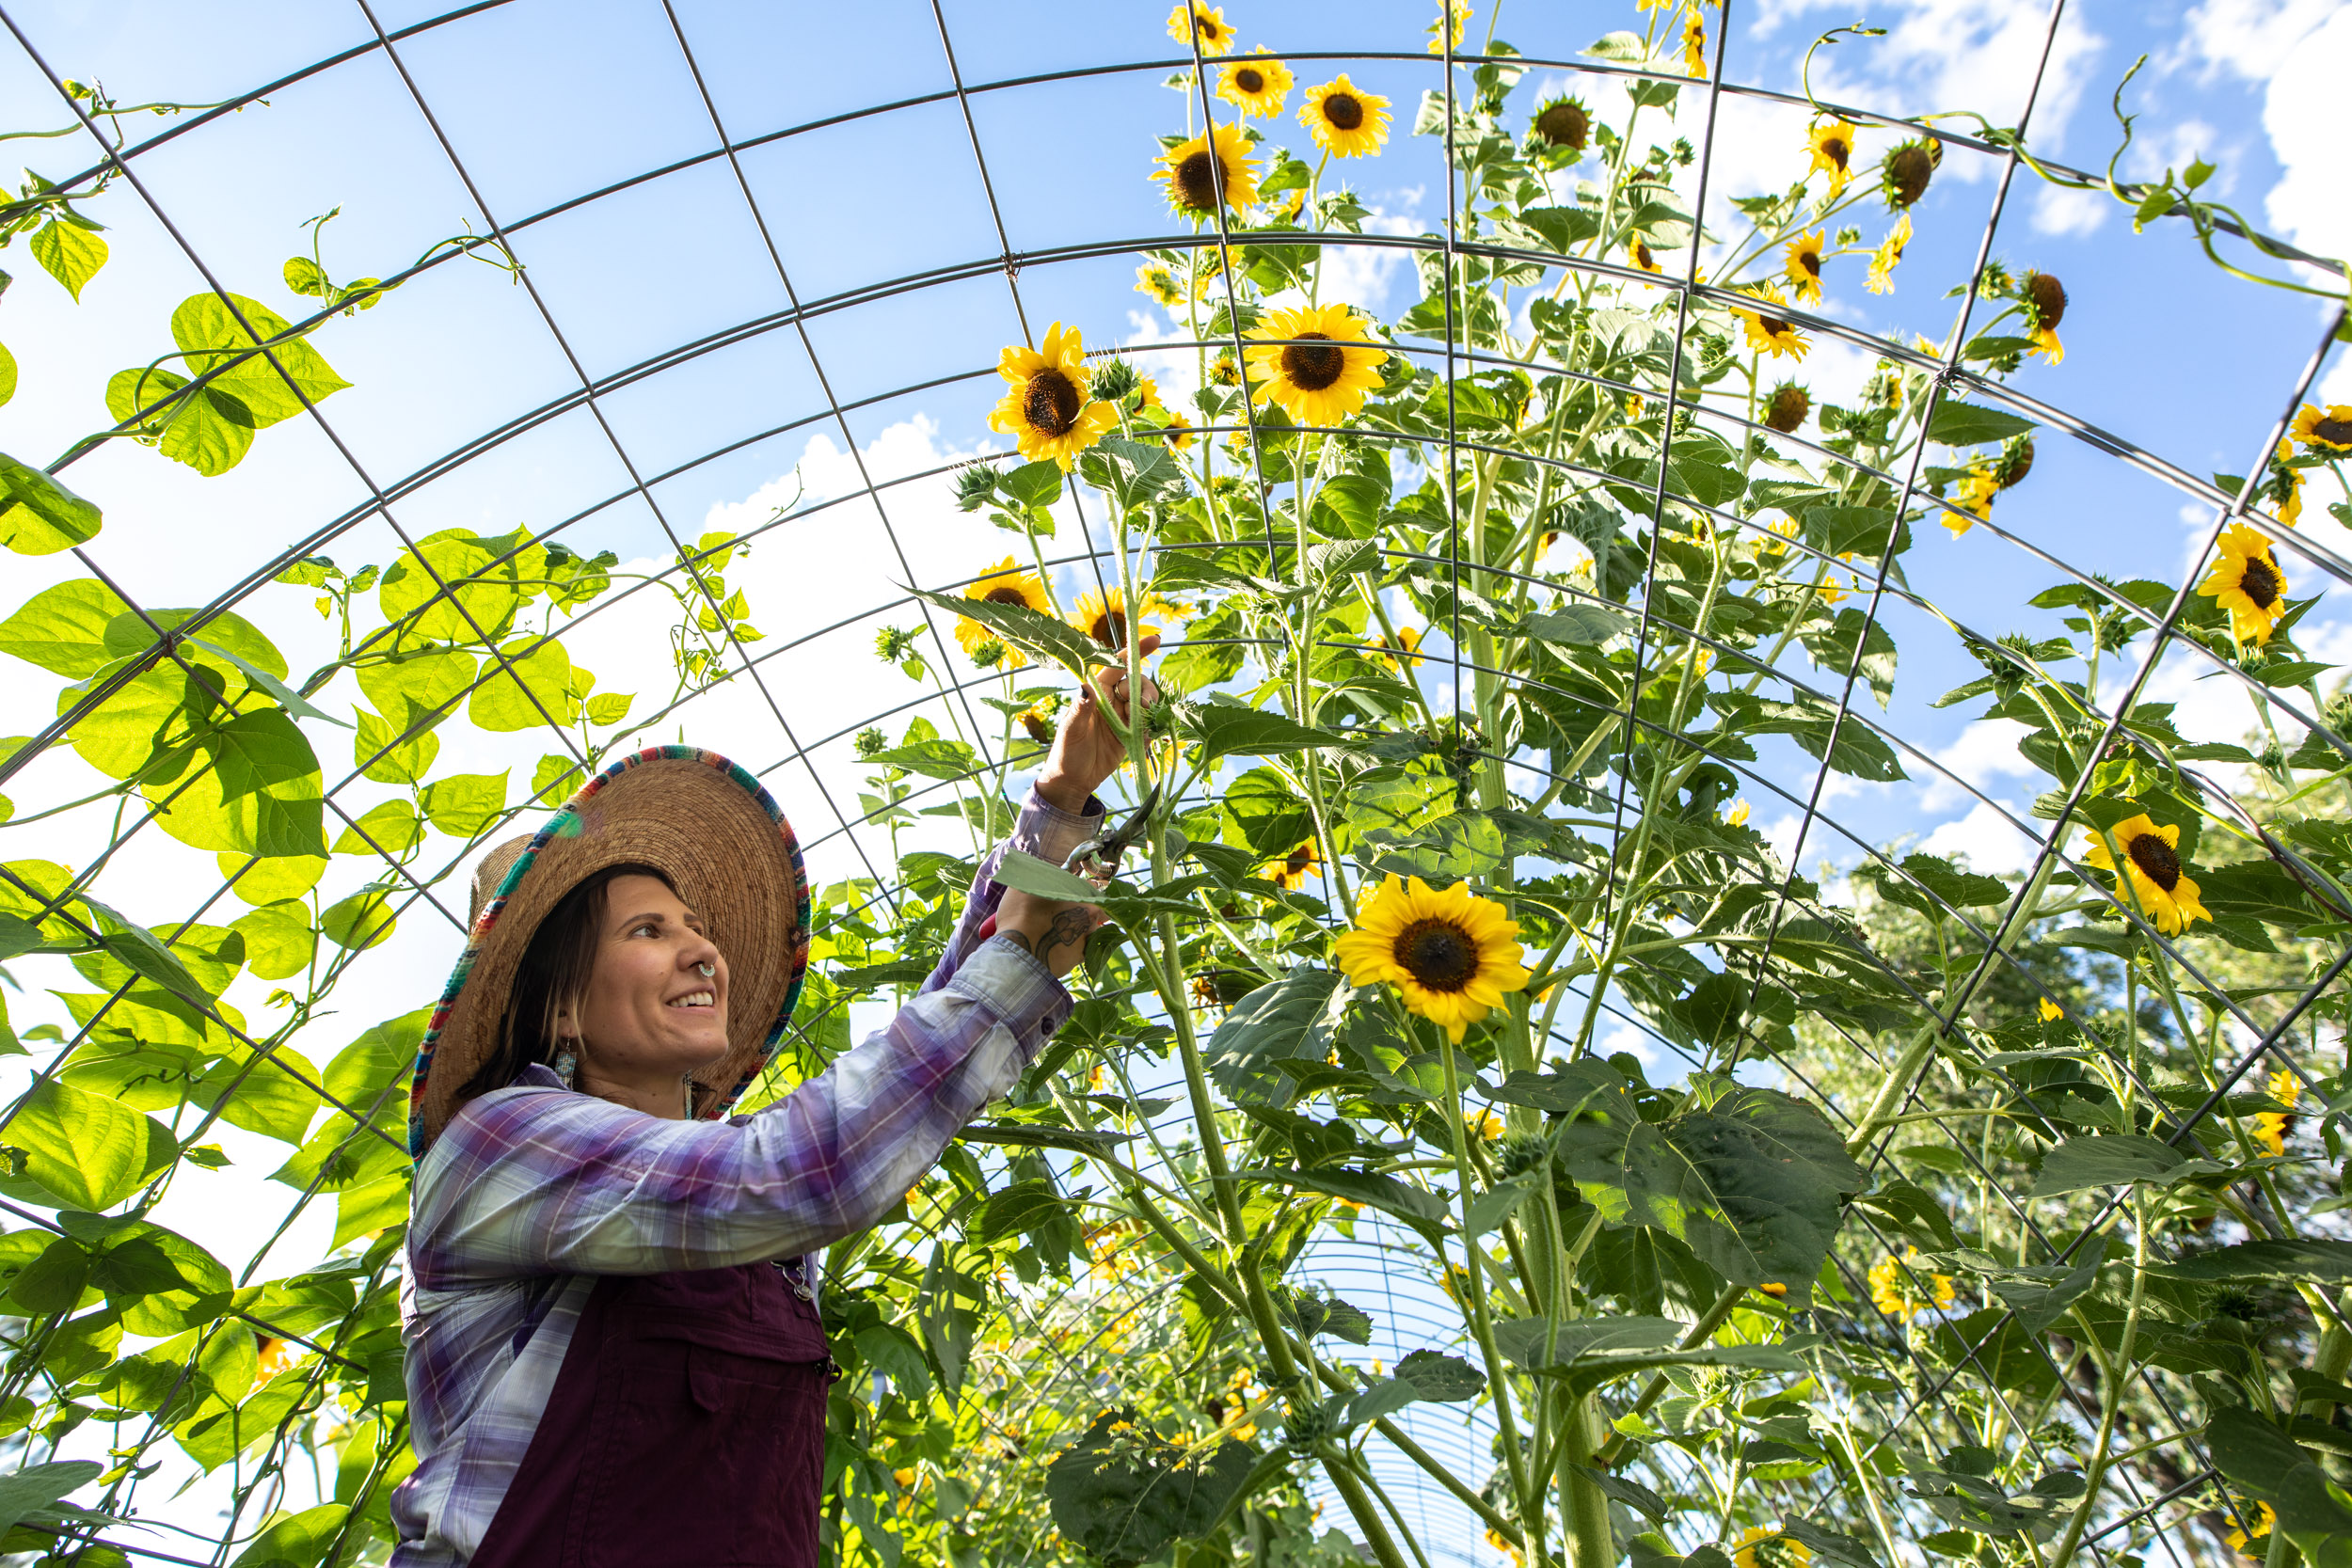 woman inspects sunflowers